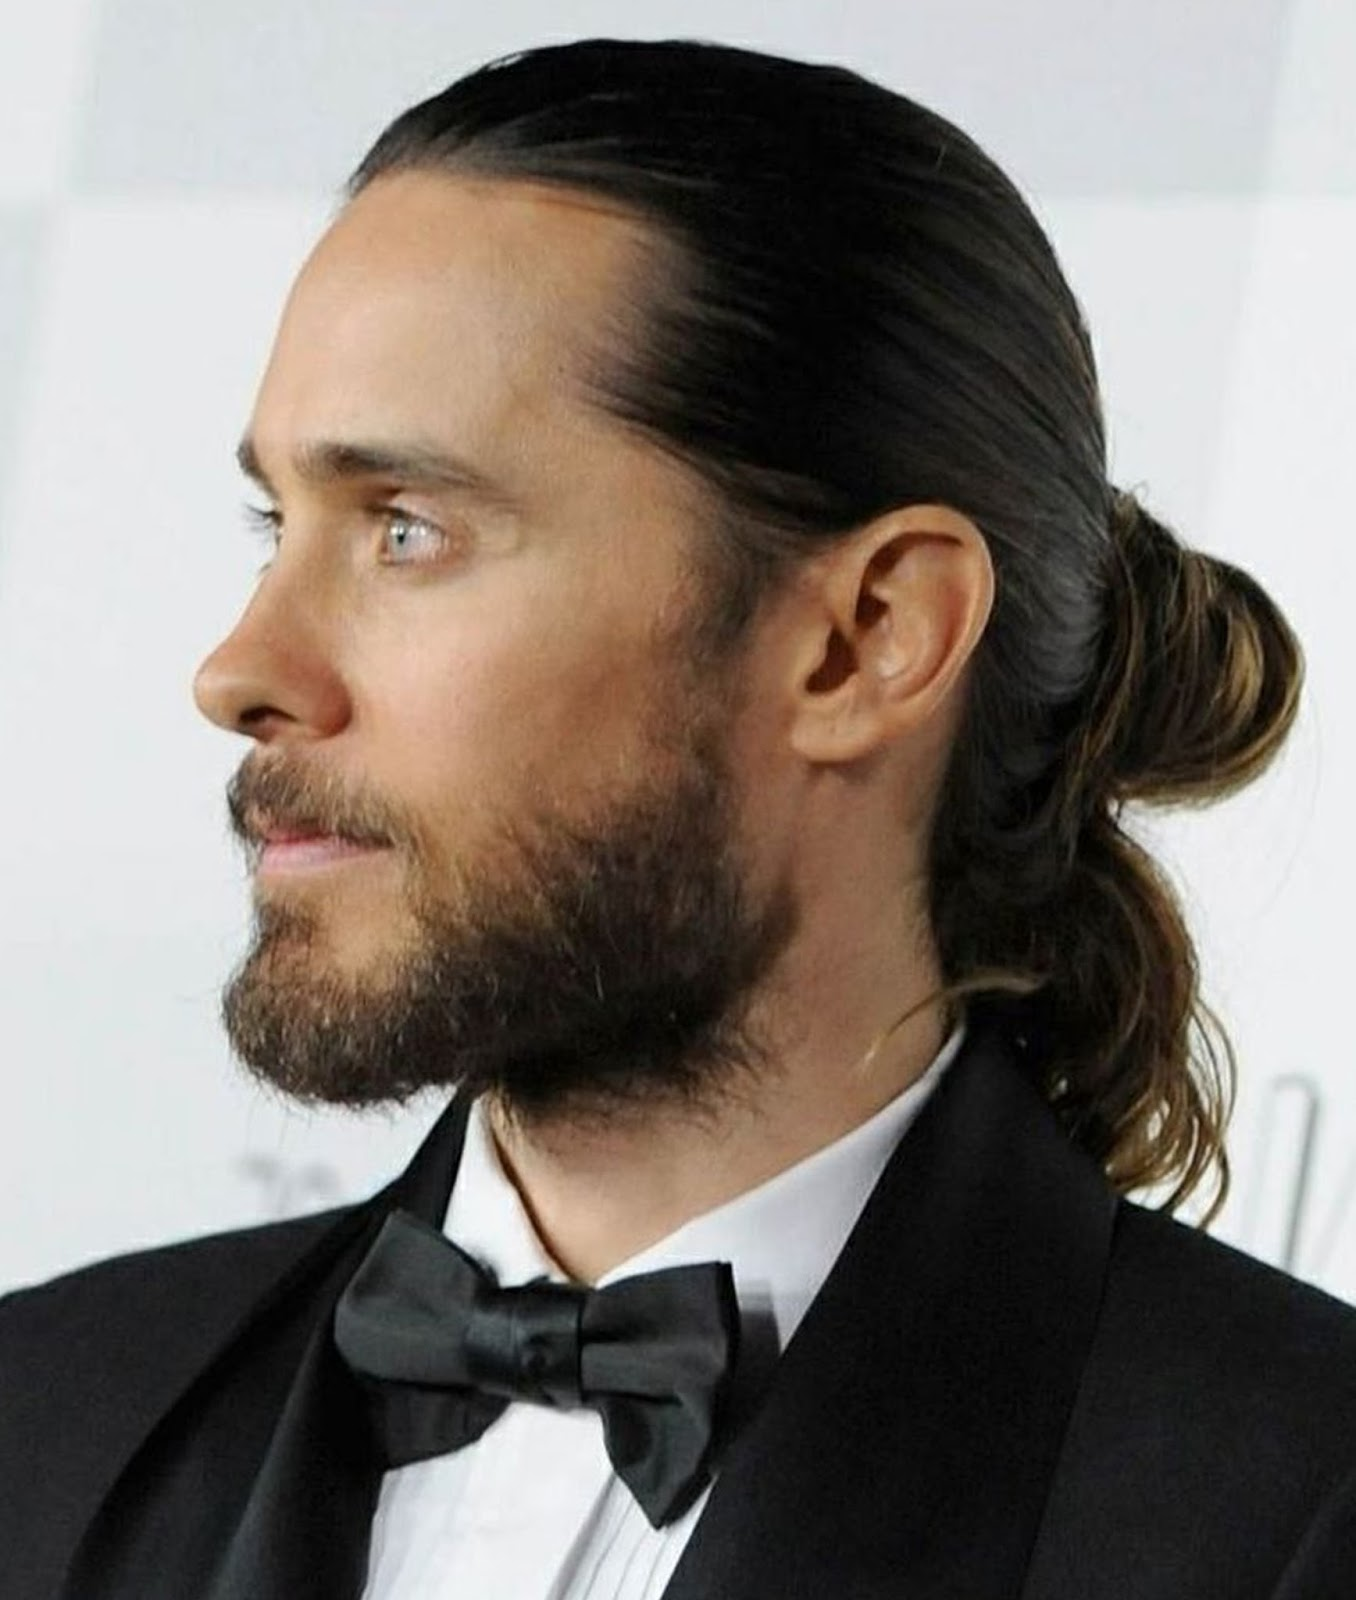 hairstyles for men with long hair.